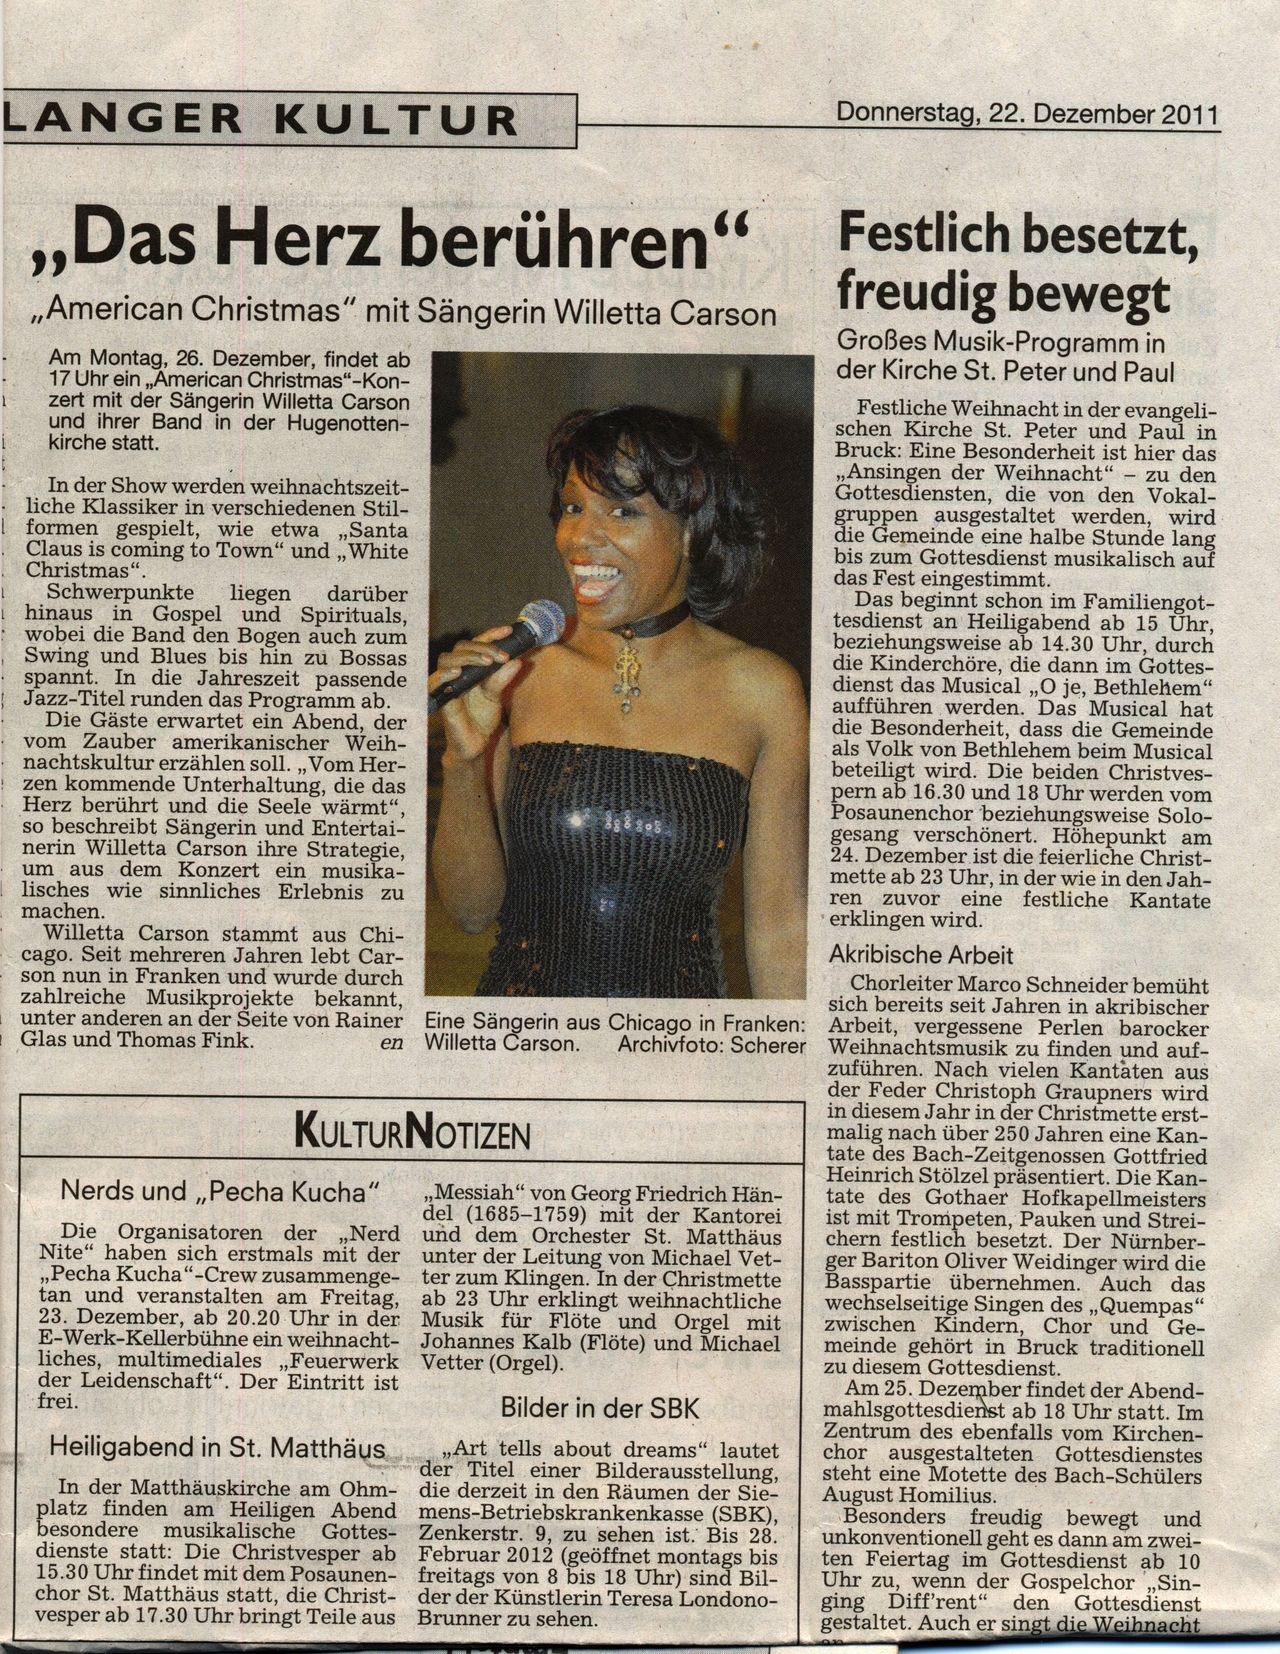 Preview of the American Christmas Concert in Erlangen, Franconia on Dec 26, 2011; press article, Erlanger Nachrichten